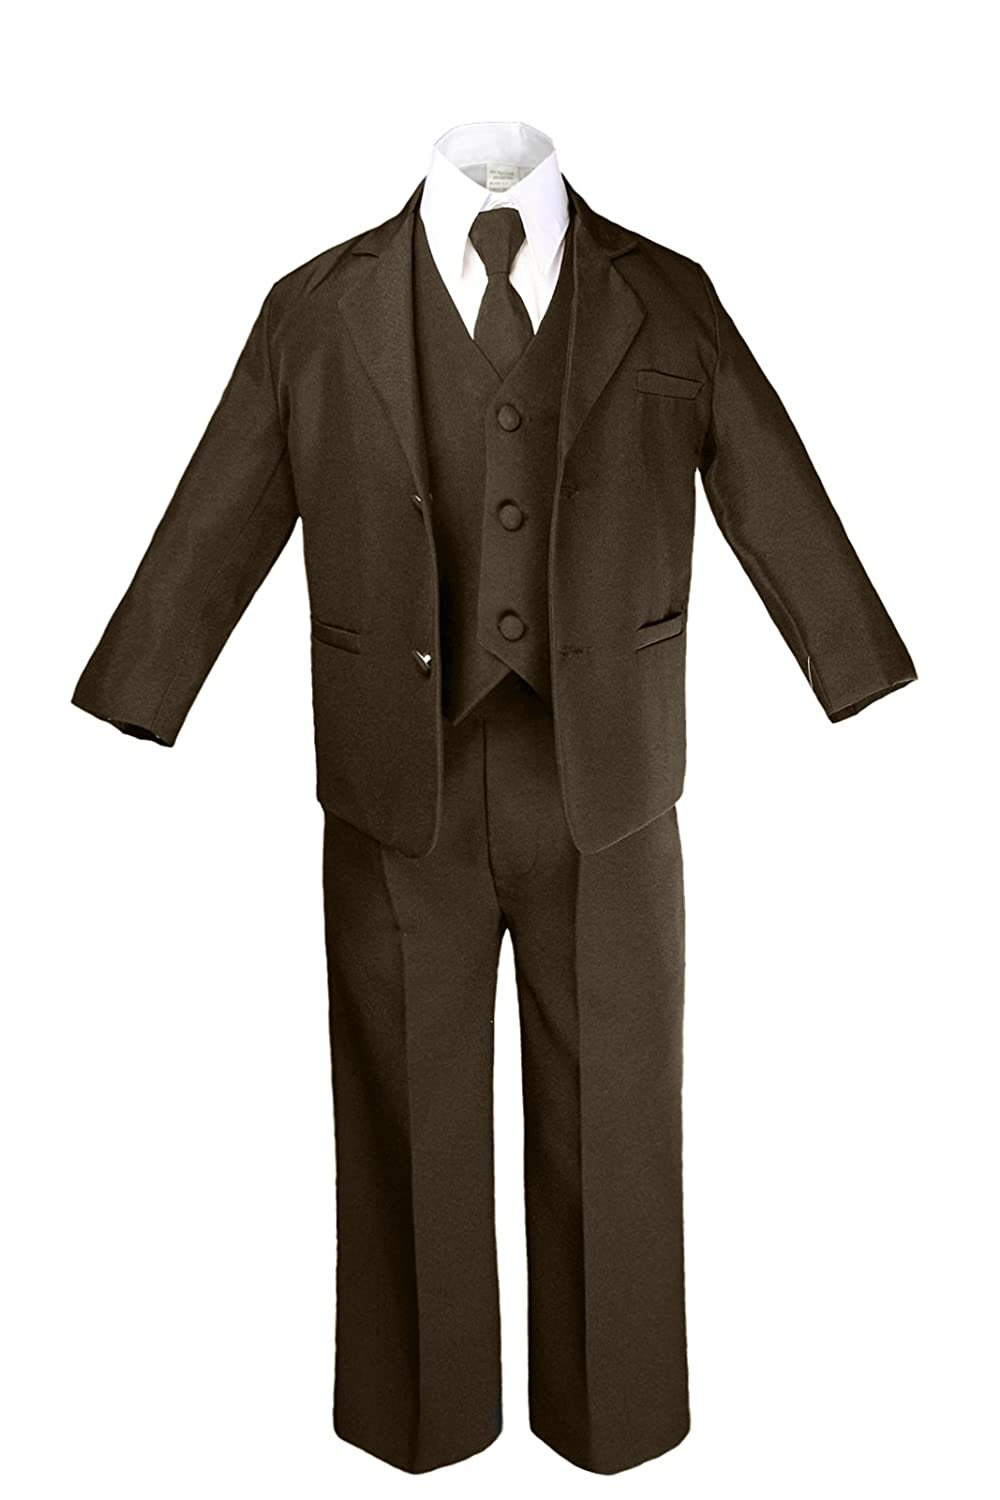 Unotux 6pc Boys Dark Brown Suits Sets with Satin Black Necktie Outfits All Size